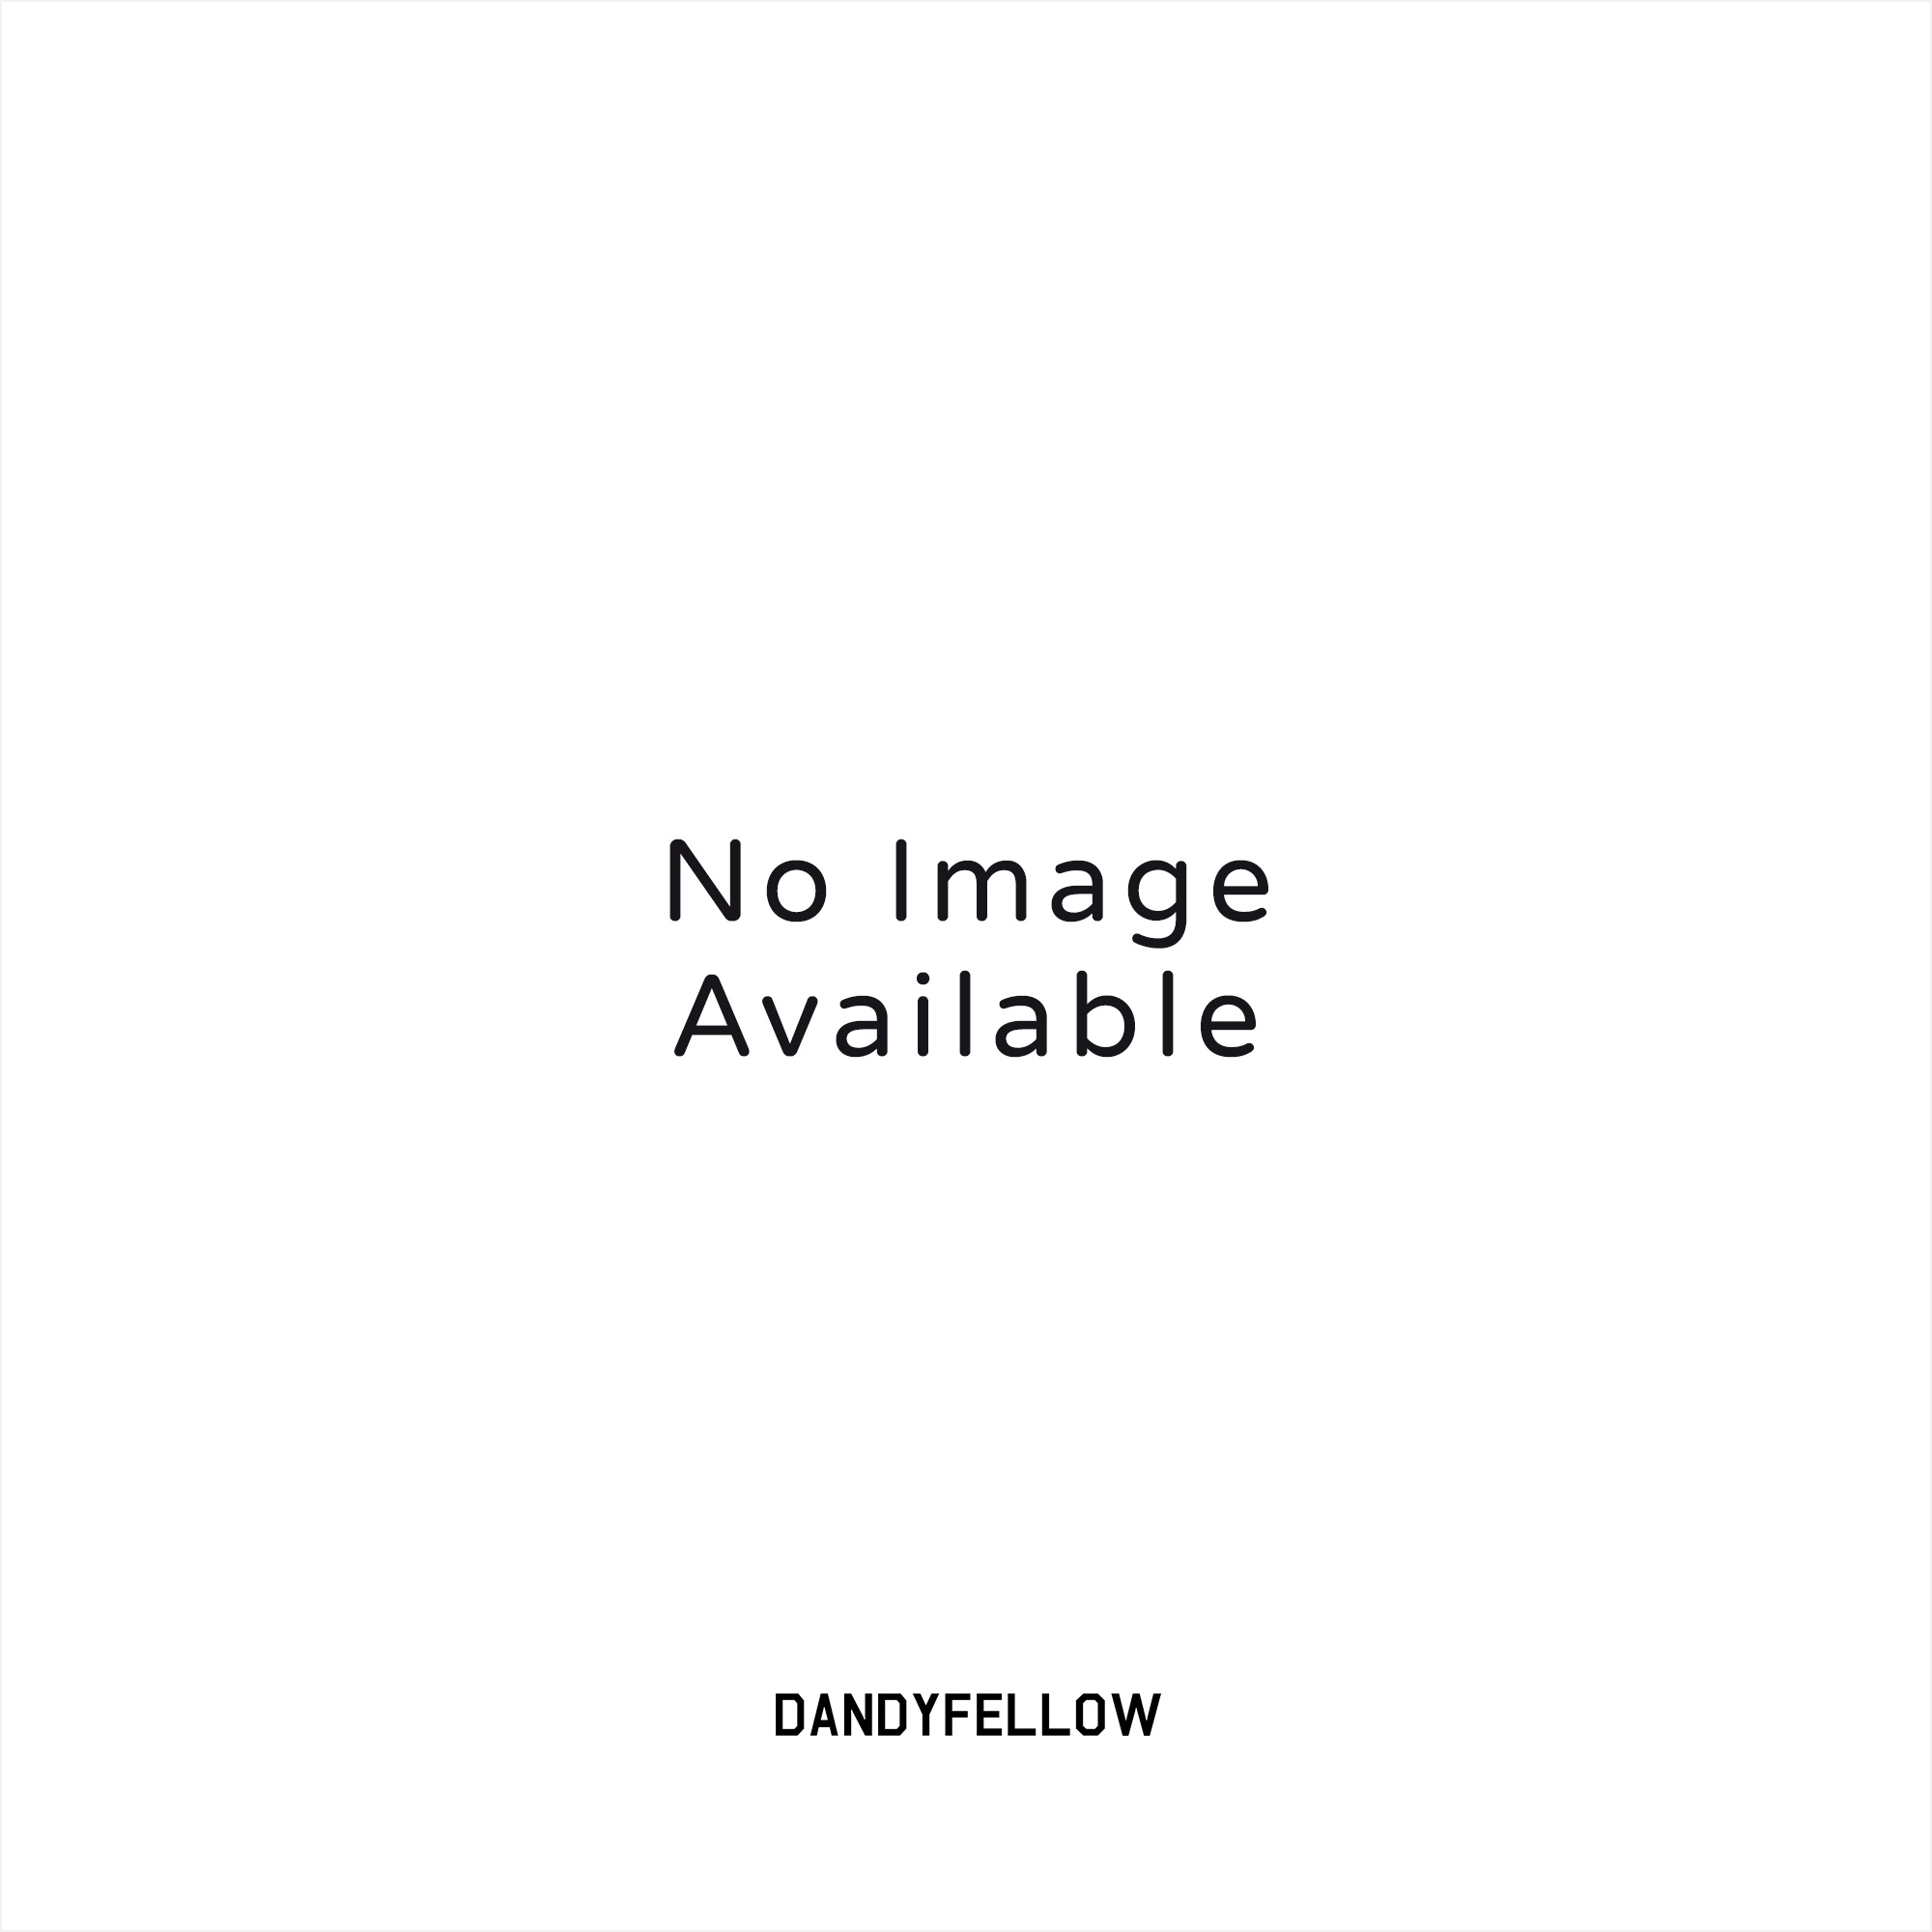 Shop Men's Clarks size 12 Oxfords & Derbys at a discounted price at Poshmark. Description: Cognac color leather Wallabees in good condition no tears or stain but show light signs of wear seen in last pics Great addition to any male's wardrobe Smokefree home. Sold by echina Fast delivery, full service customer support.